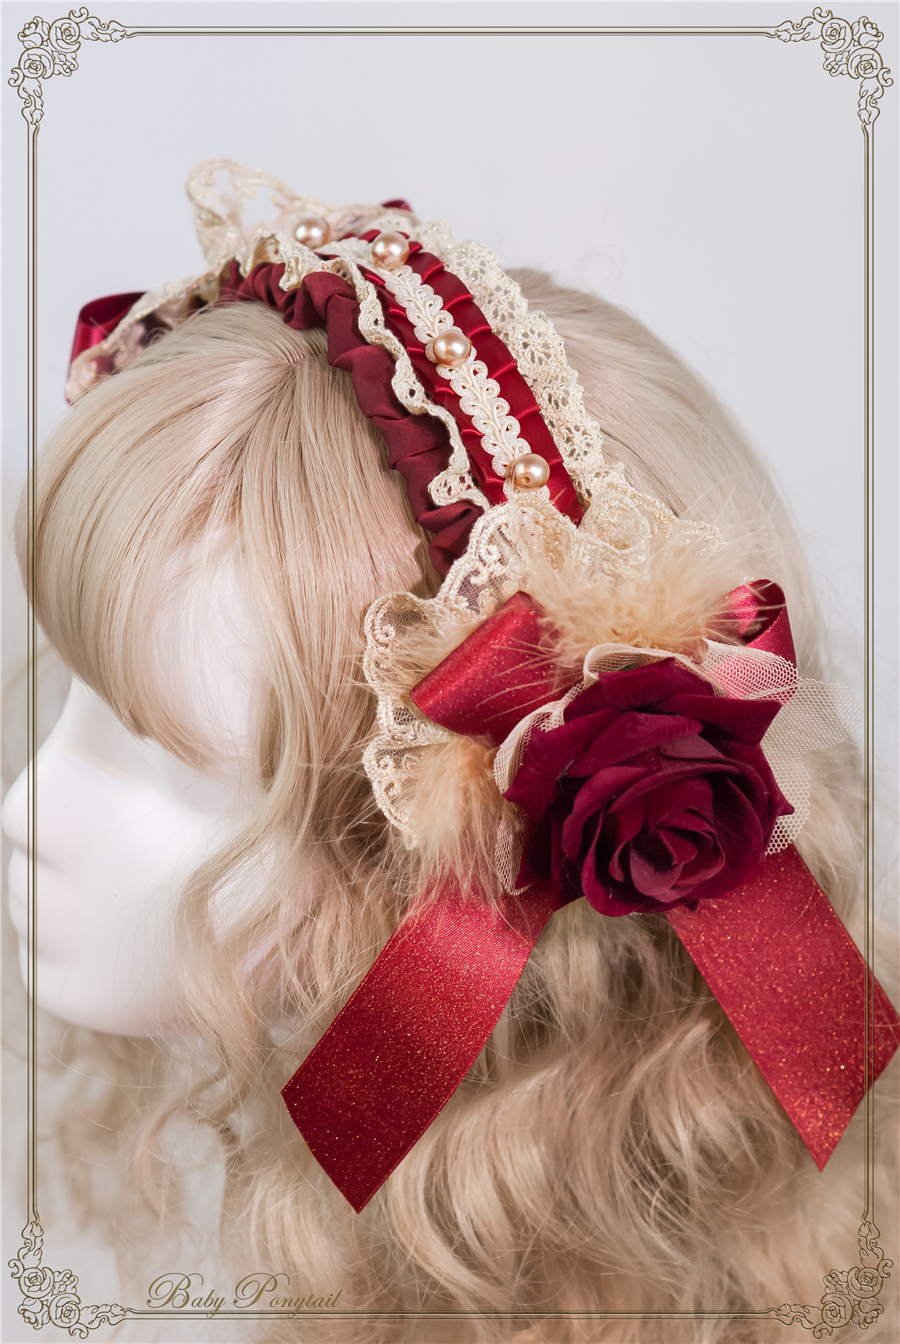 Baby Ponytail_Stock photo_Circus Princess_Rose Head Dress Red_04.jpg